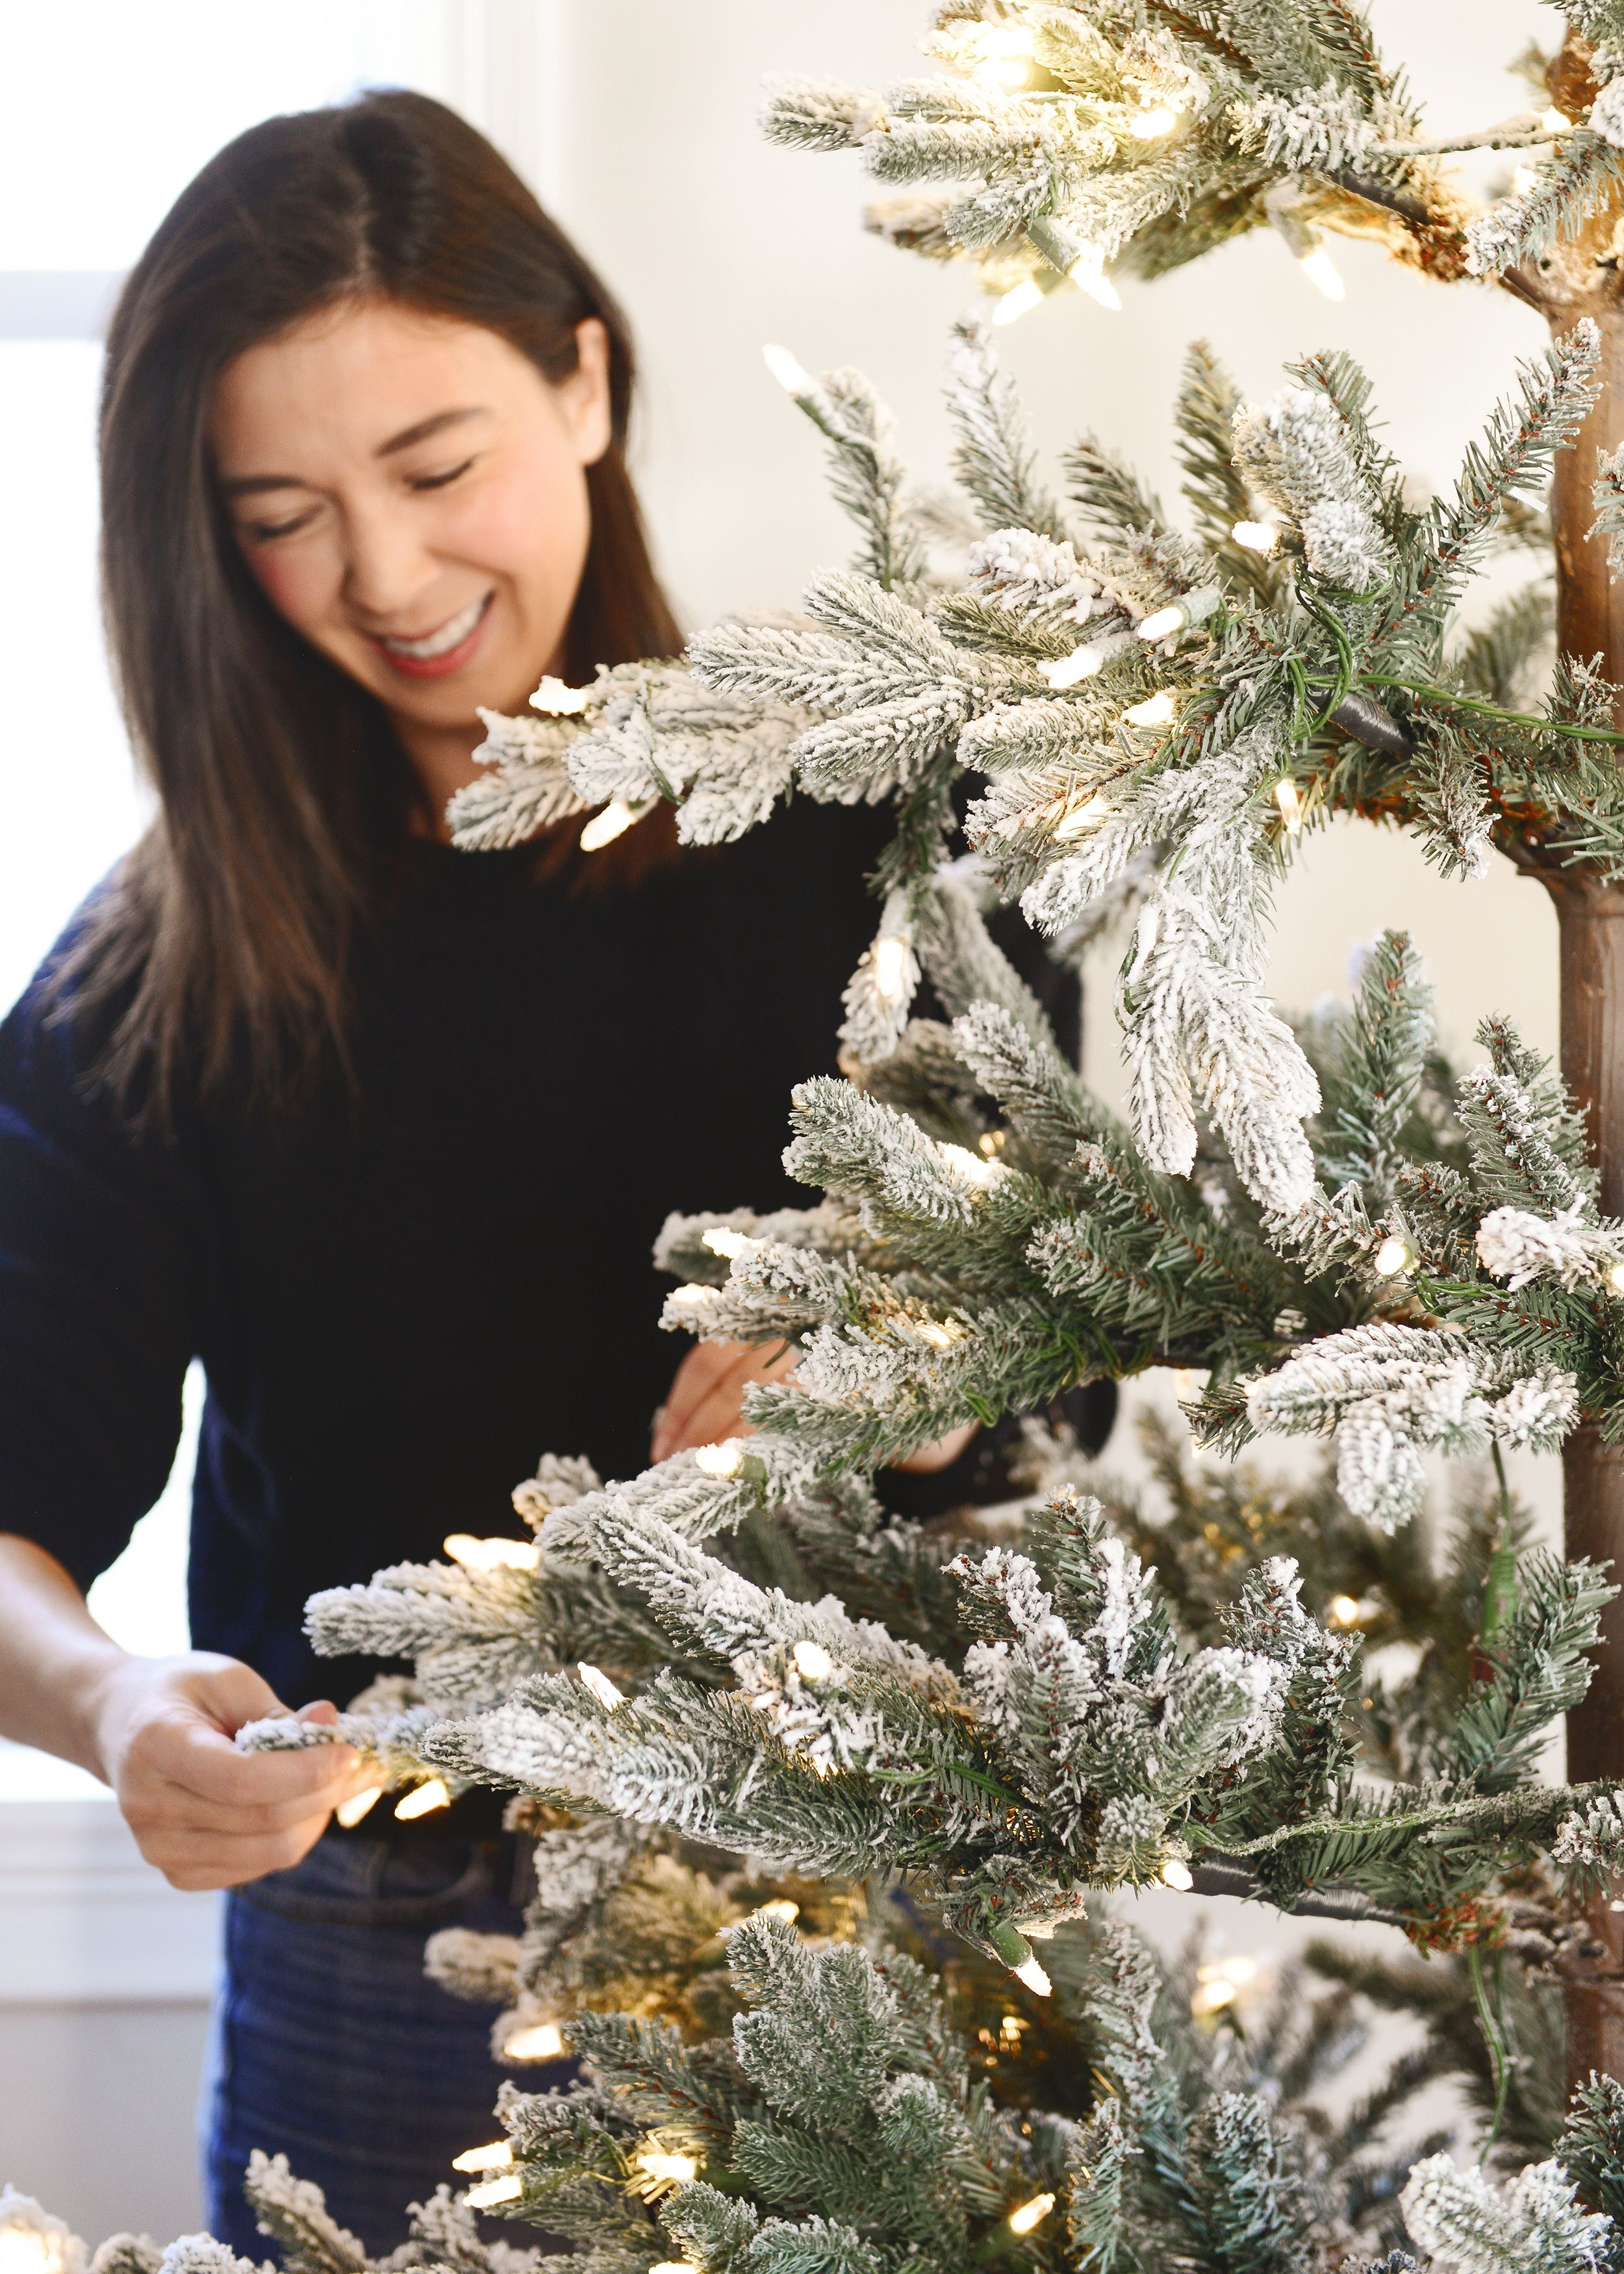 Flocked Trees In Every Shape and Size | Flocked trees, Flocked christmas trees, Tree collar